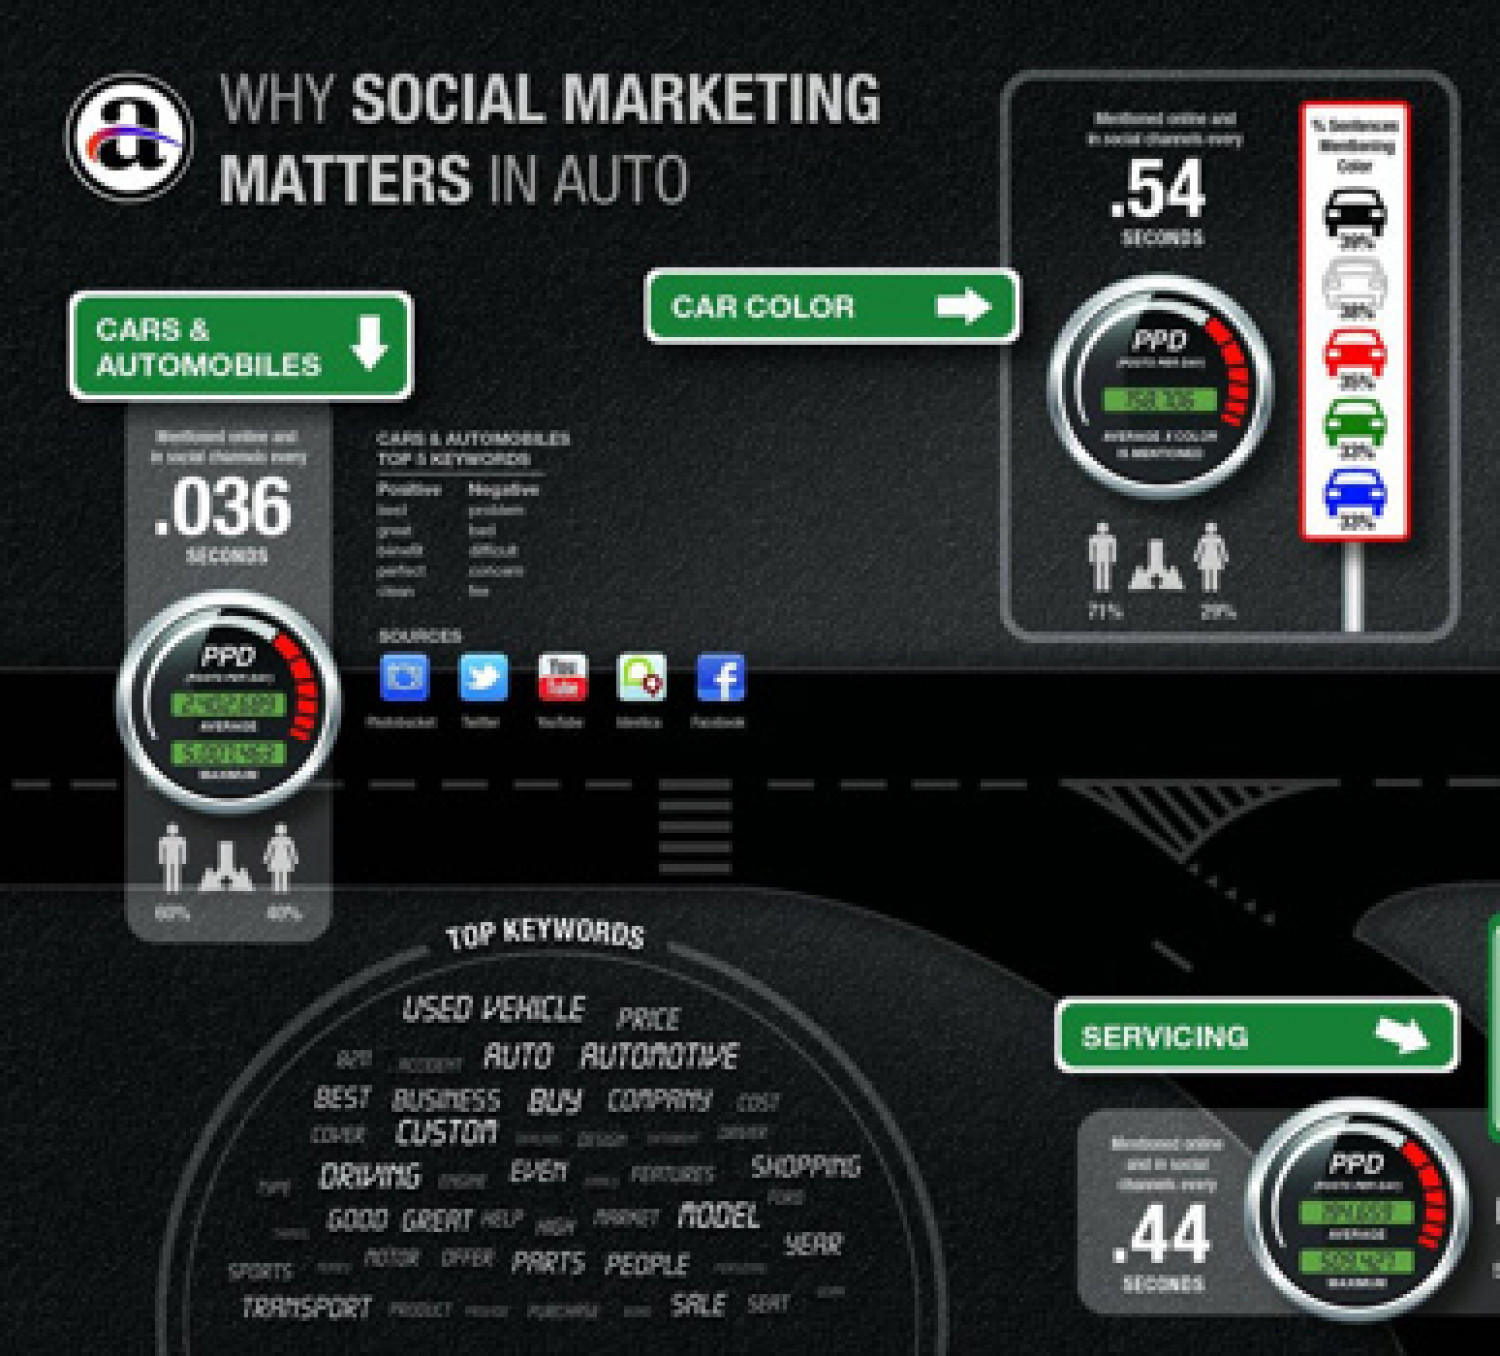 Why Social Marketing Matters In Auto Infographic